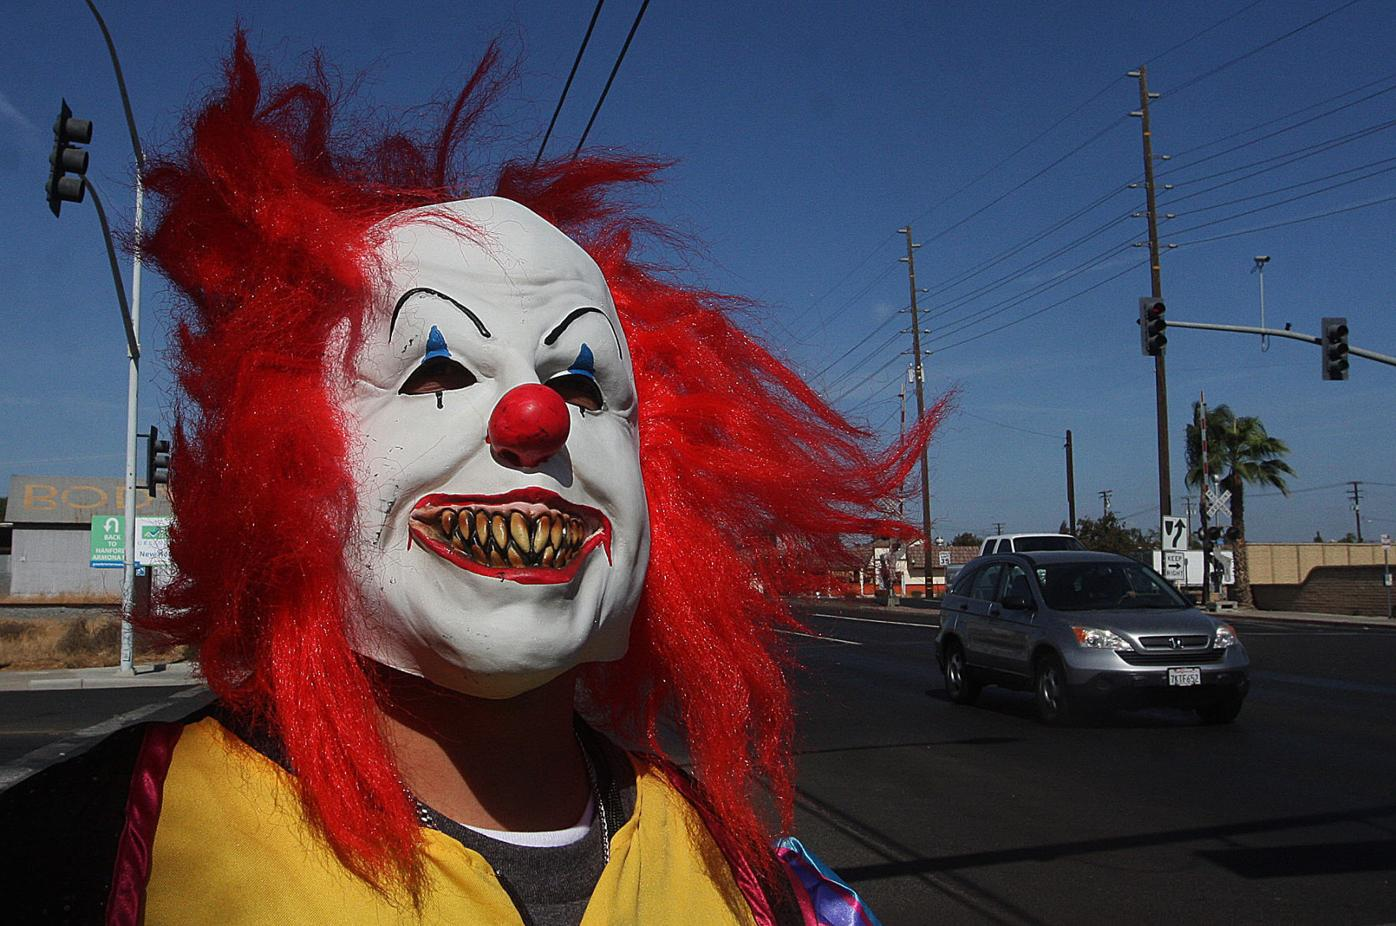 Clown outfits for Halloween in Hanford